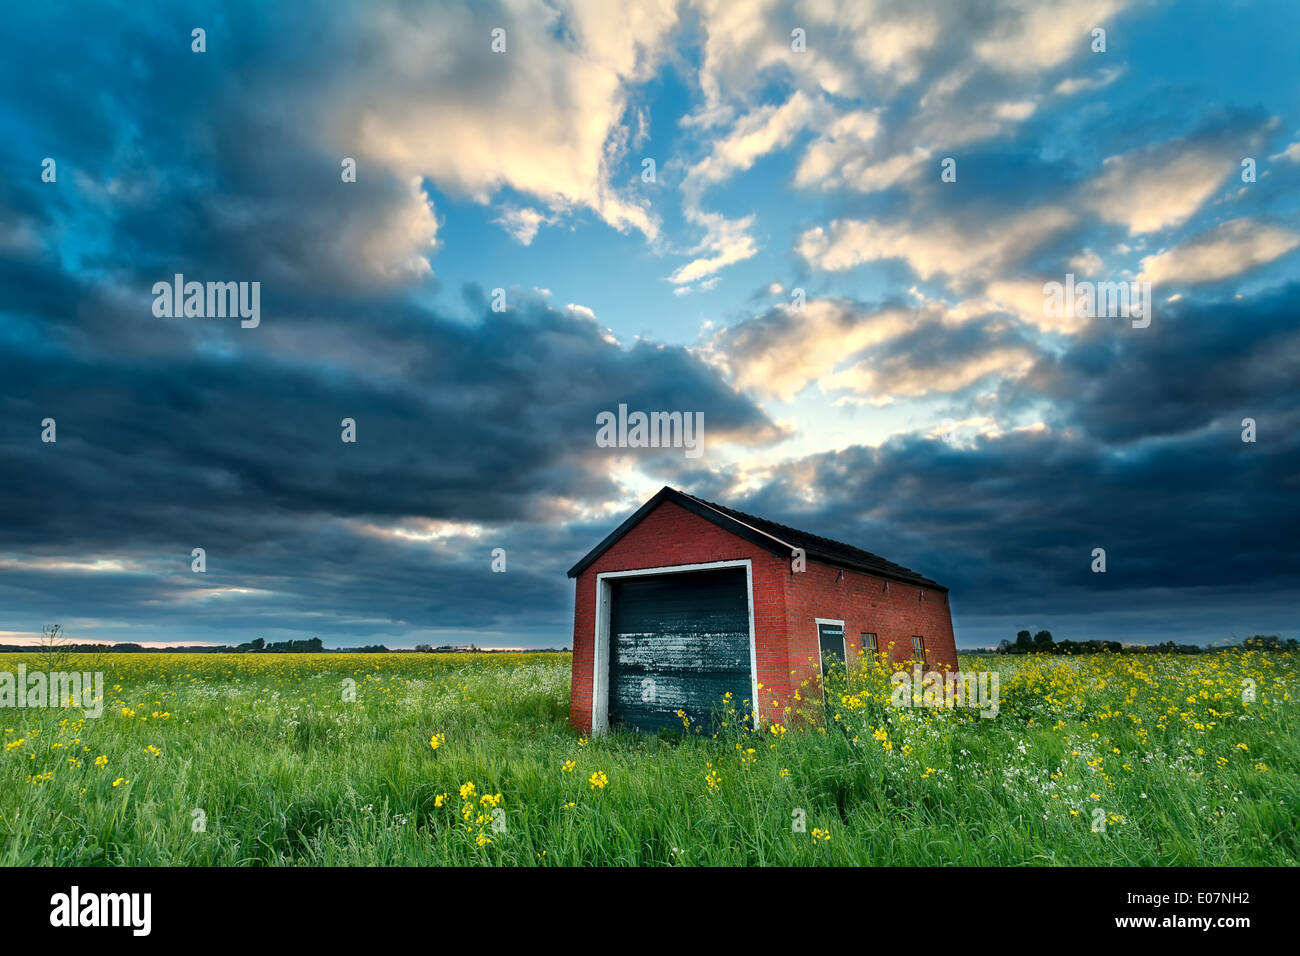 farmhouse on rapeseed field at stormy sunset, Netherlands - Stock Image